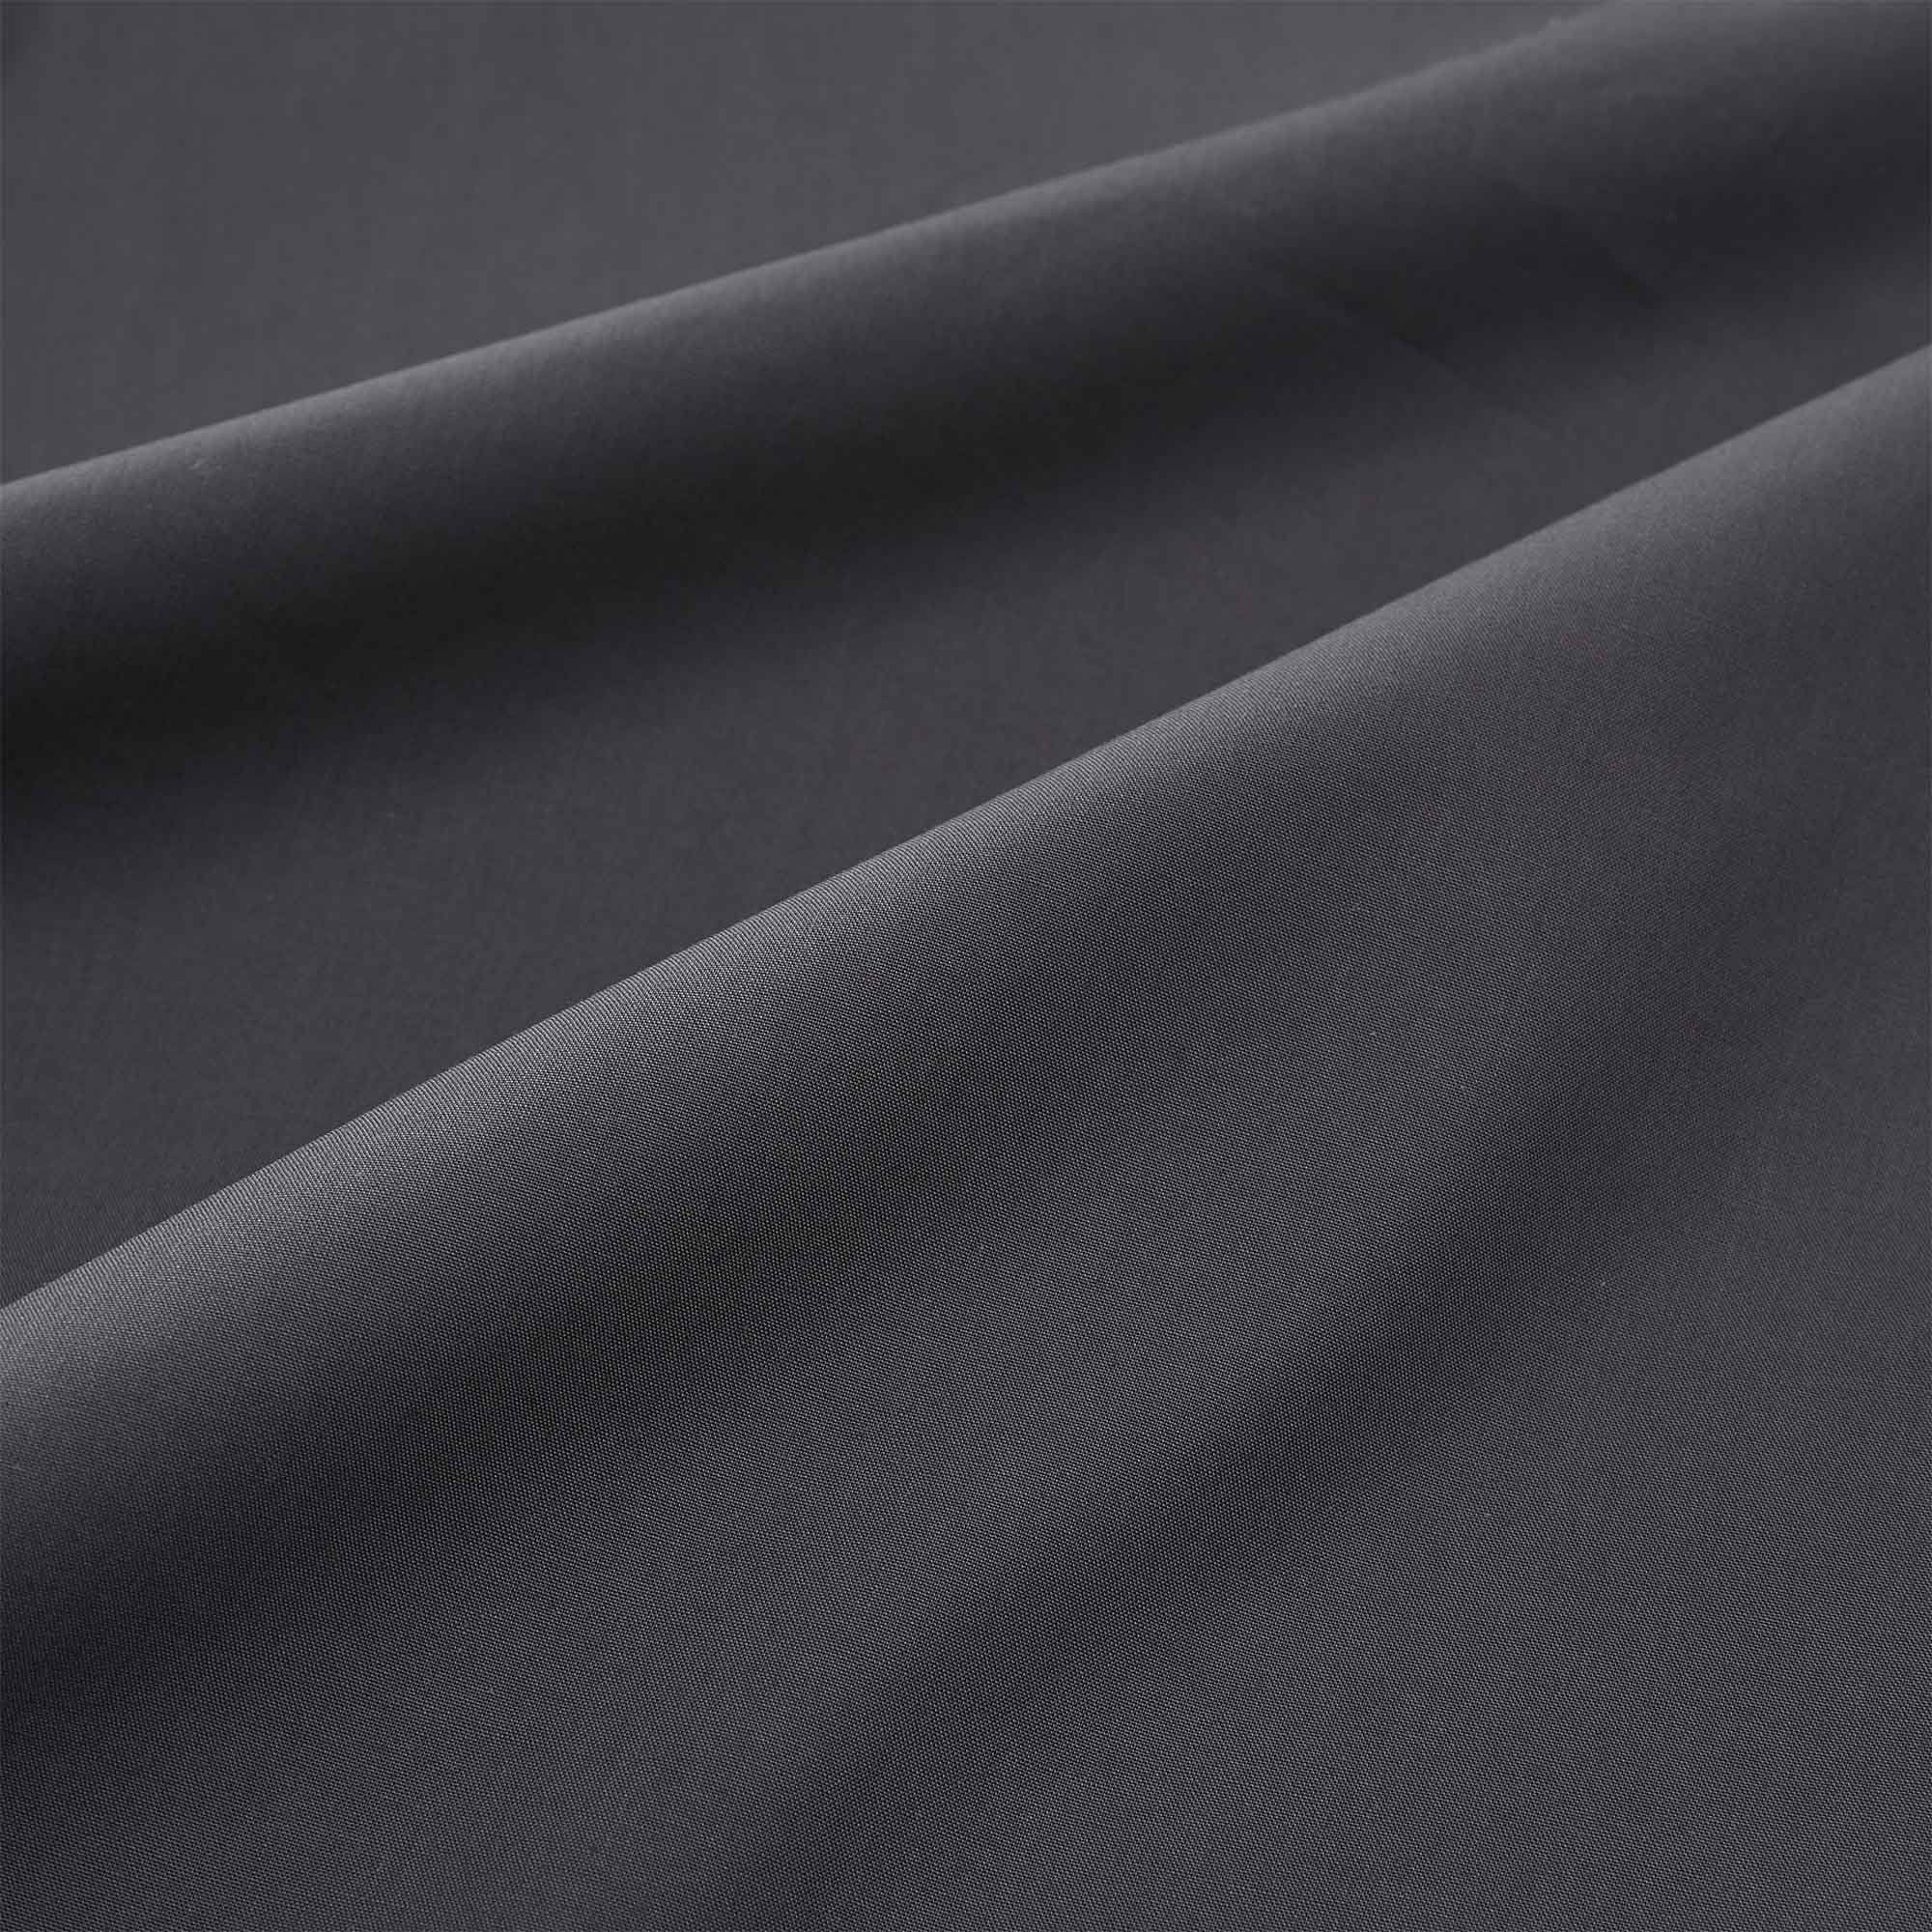 Perpignan Topper Fitted Sheet in grey | Home & Living inspiration | URBANARA